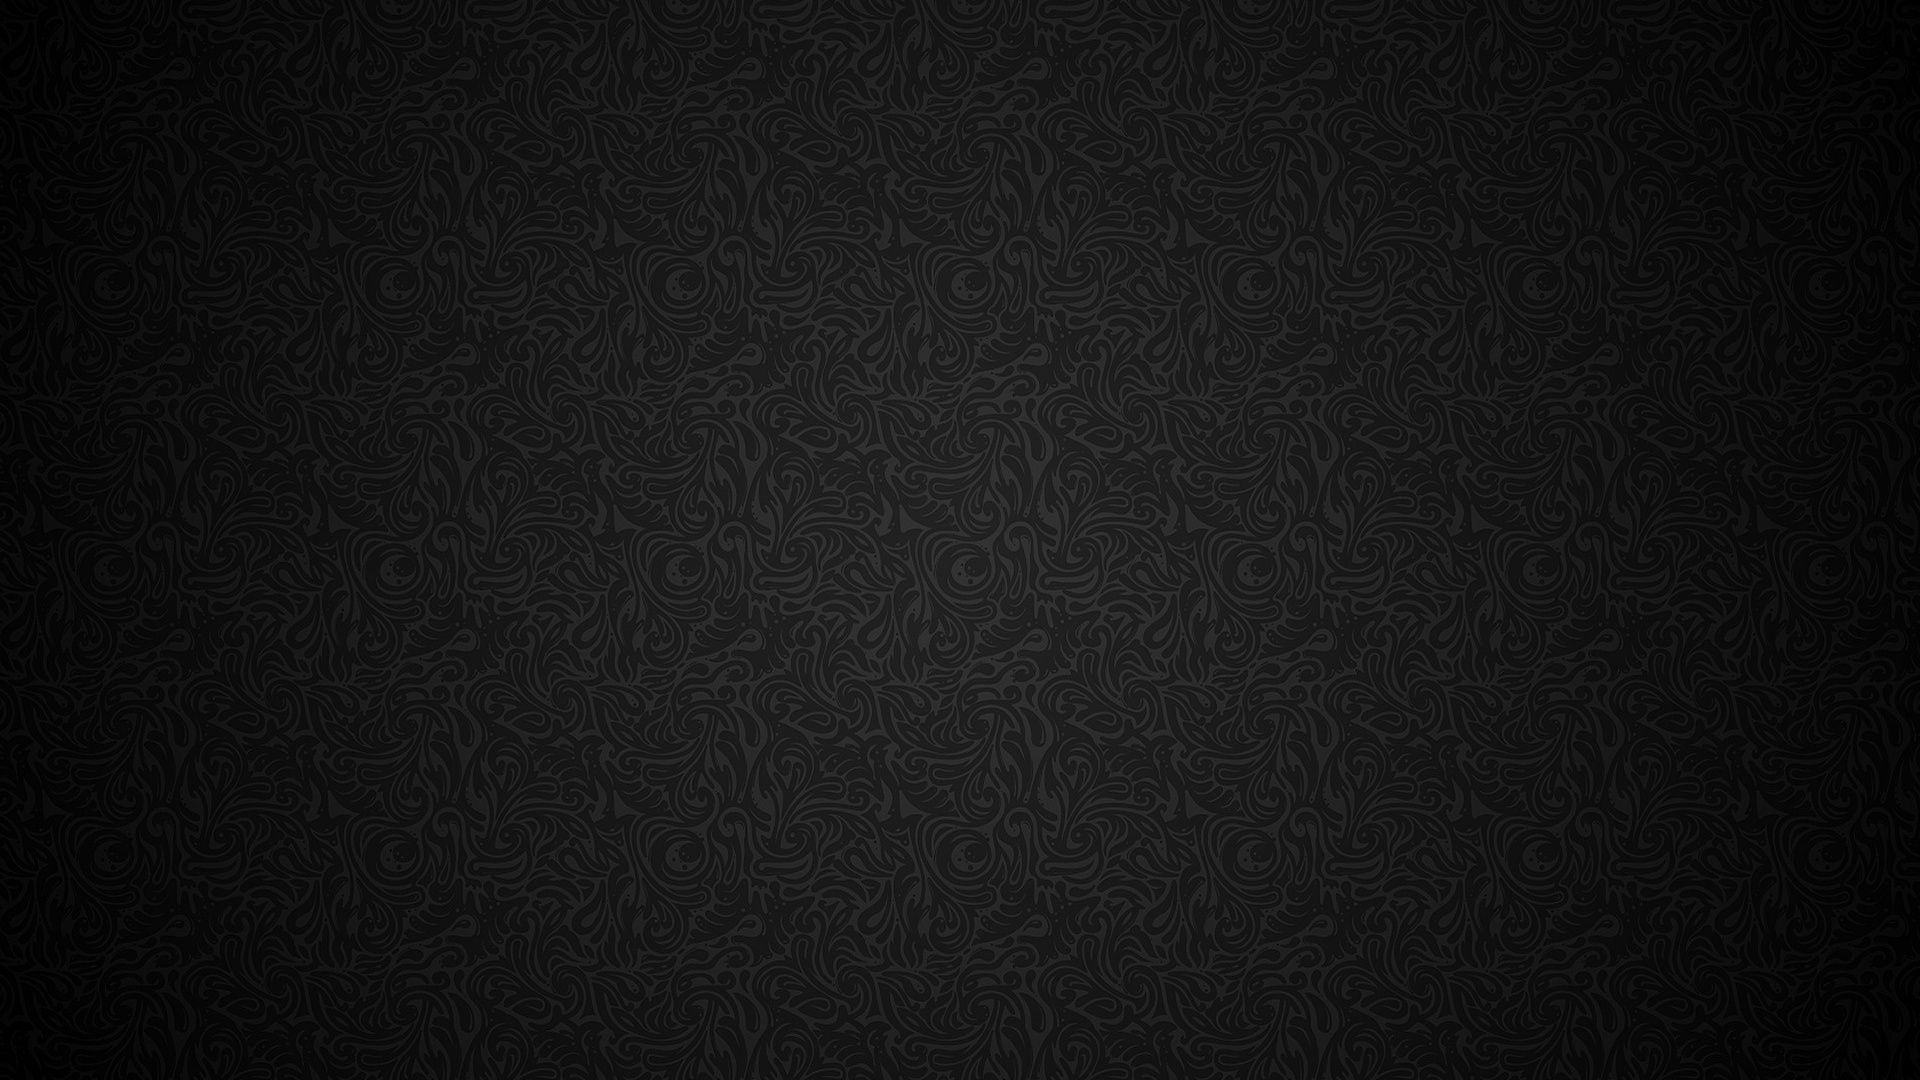 Plain Black free background